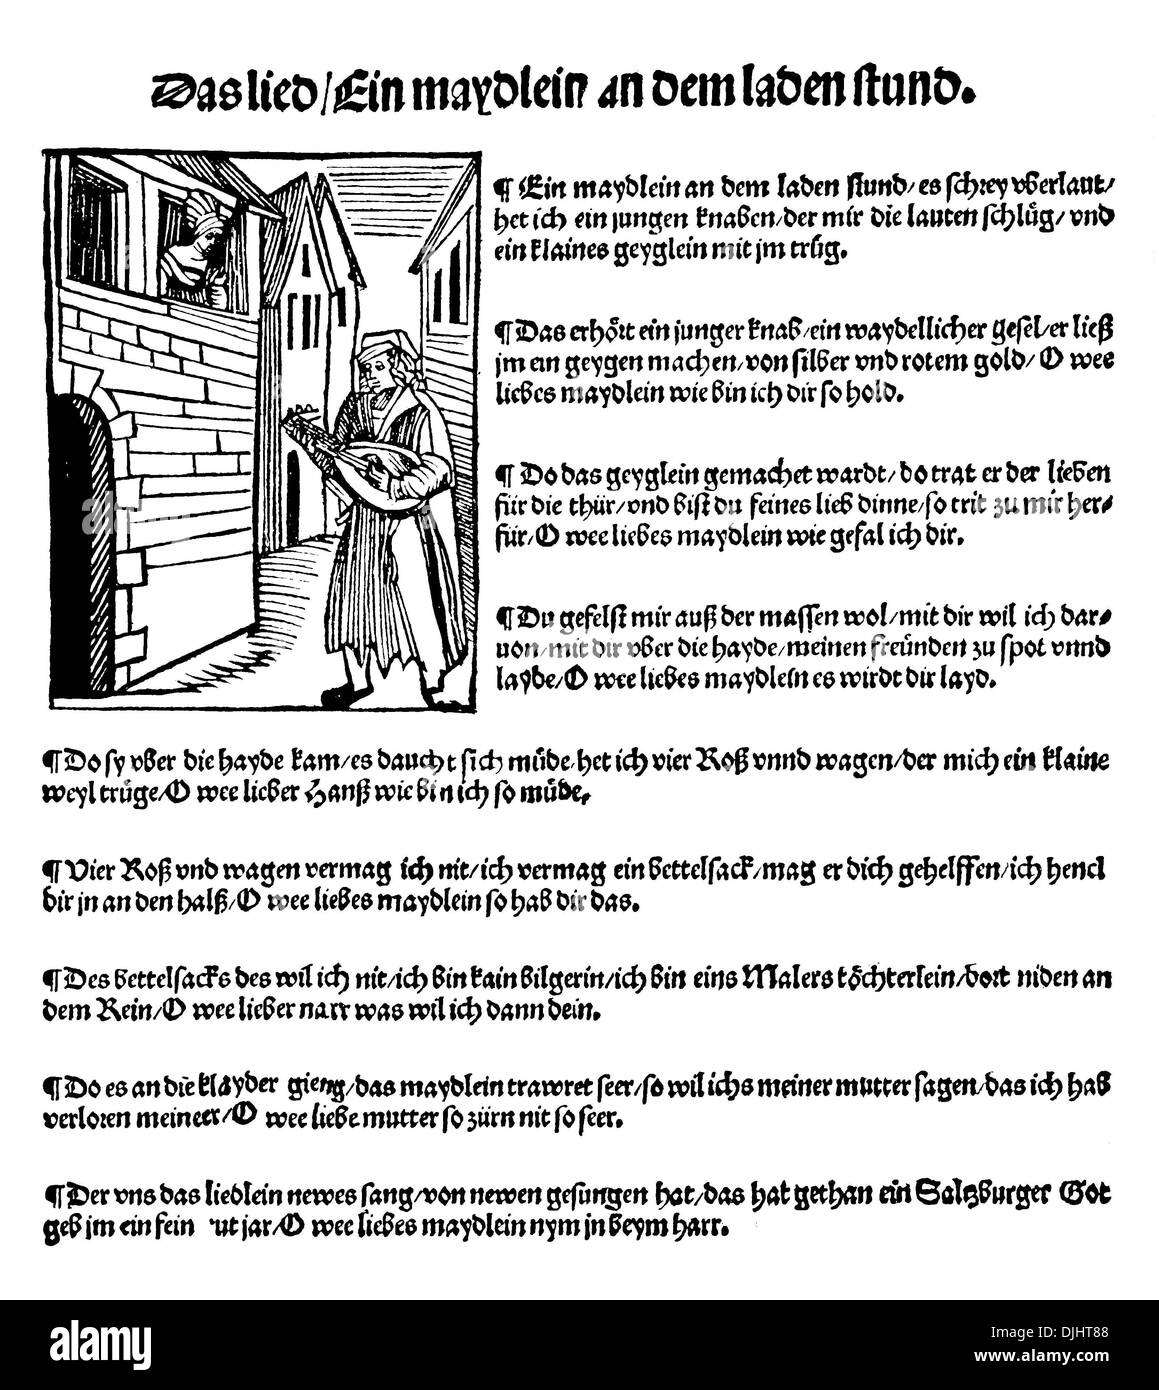 Folk song, pamphlet, 16th Century - Stock Image